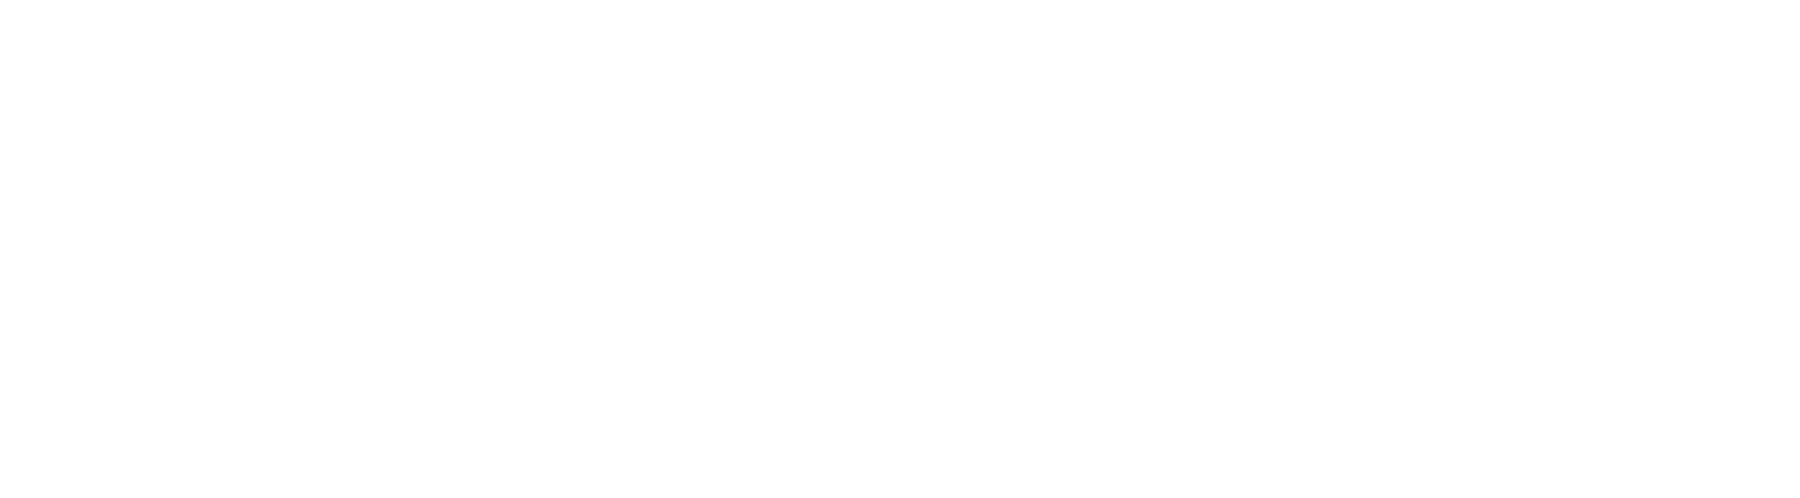 Civic Update Text.png